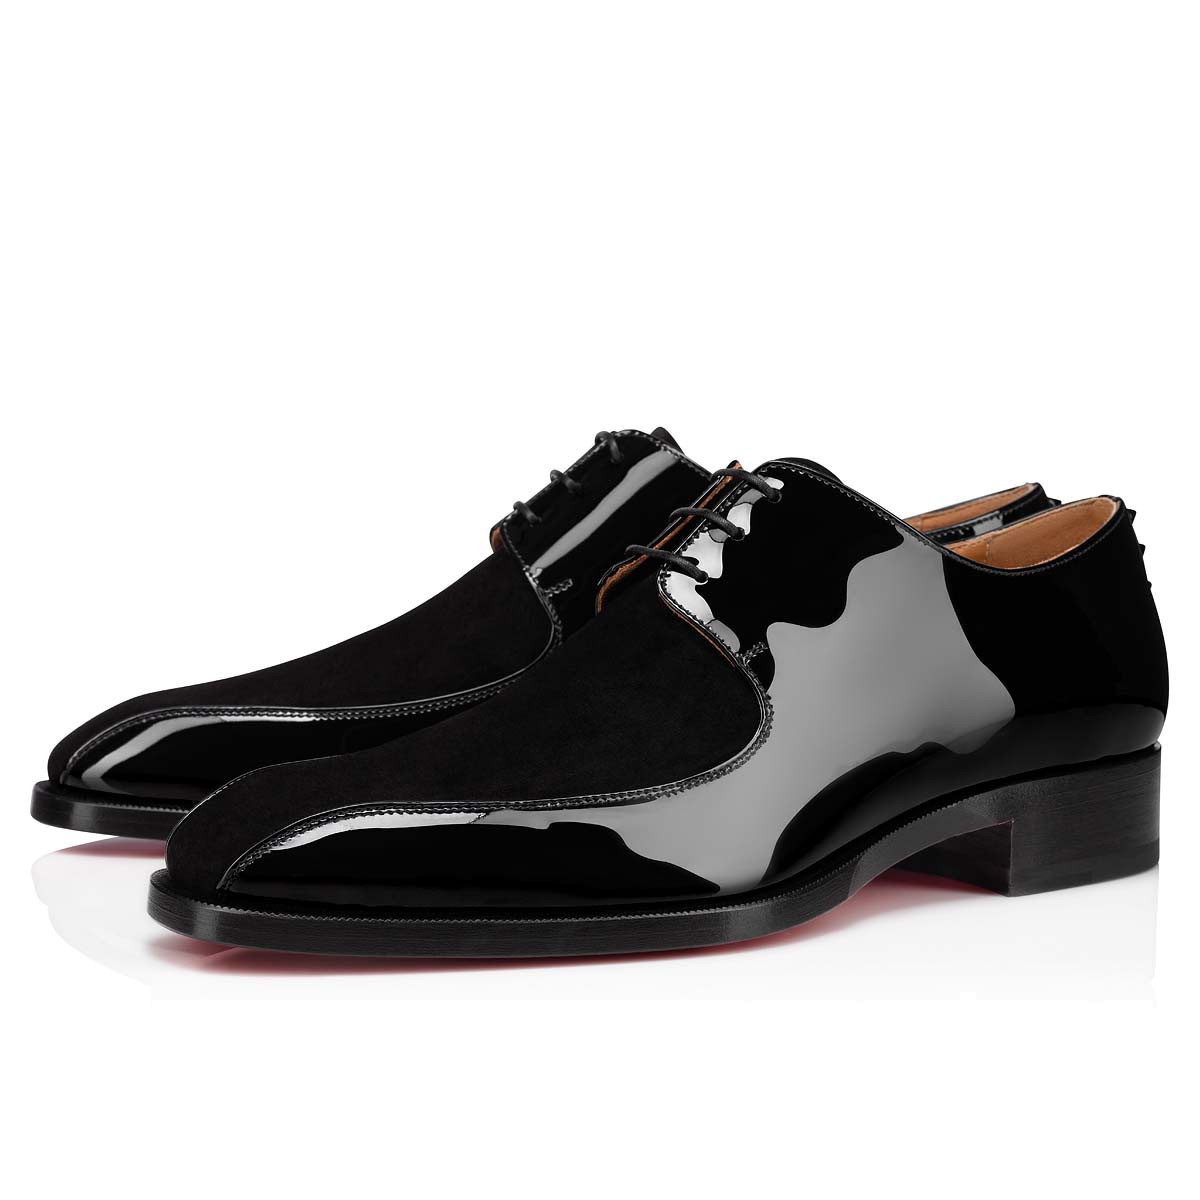 Shoes - Marco Spikes Flat - Christian Louboutin